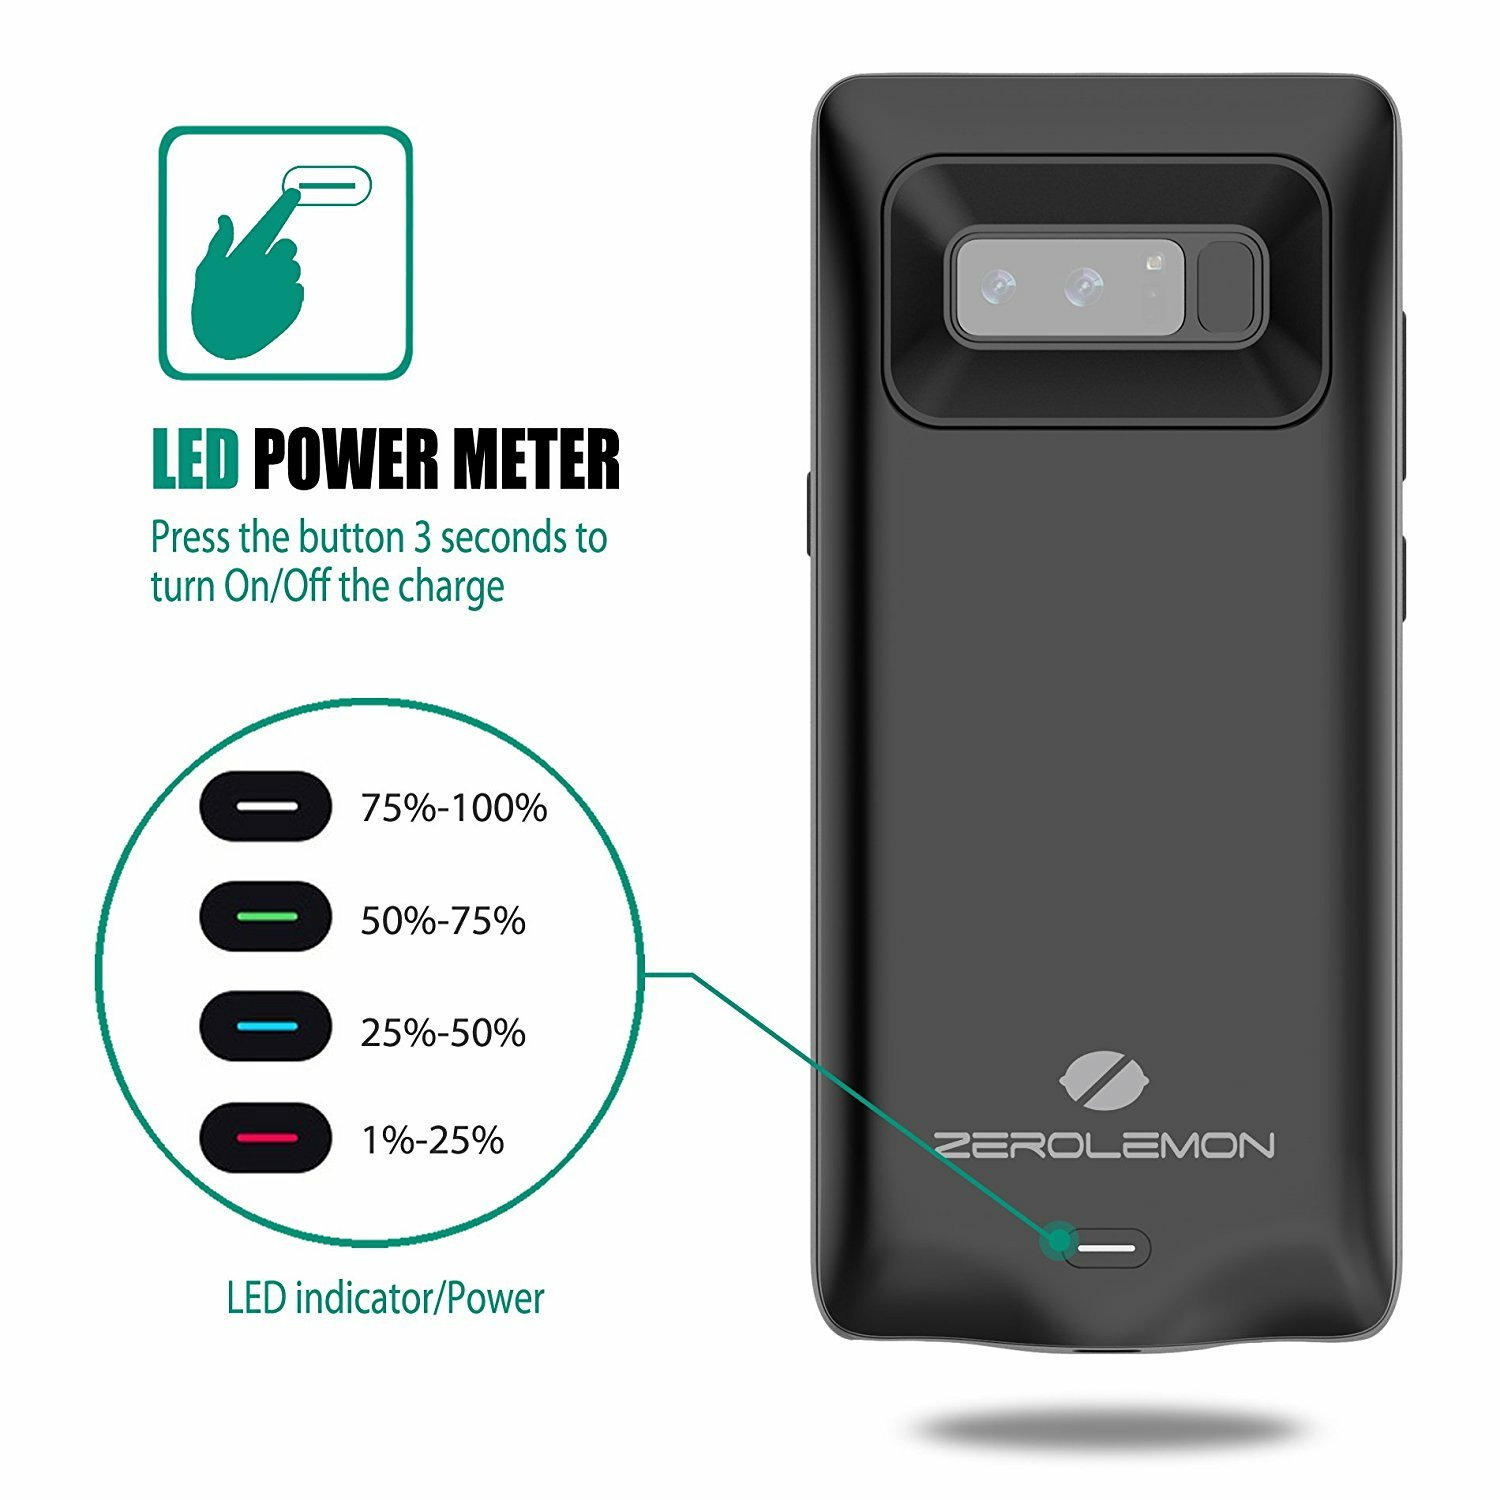 ZeroLemon Debuts its 5500mAh Battery Case for Samsung Galaxy Note 8